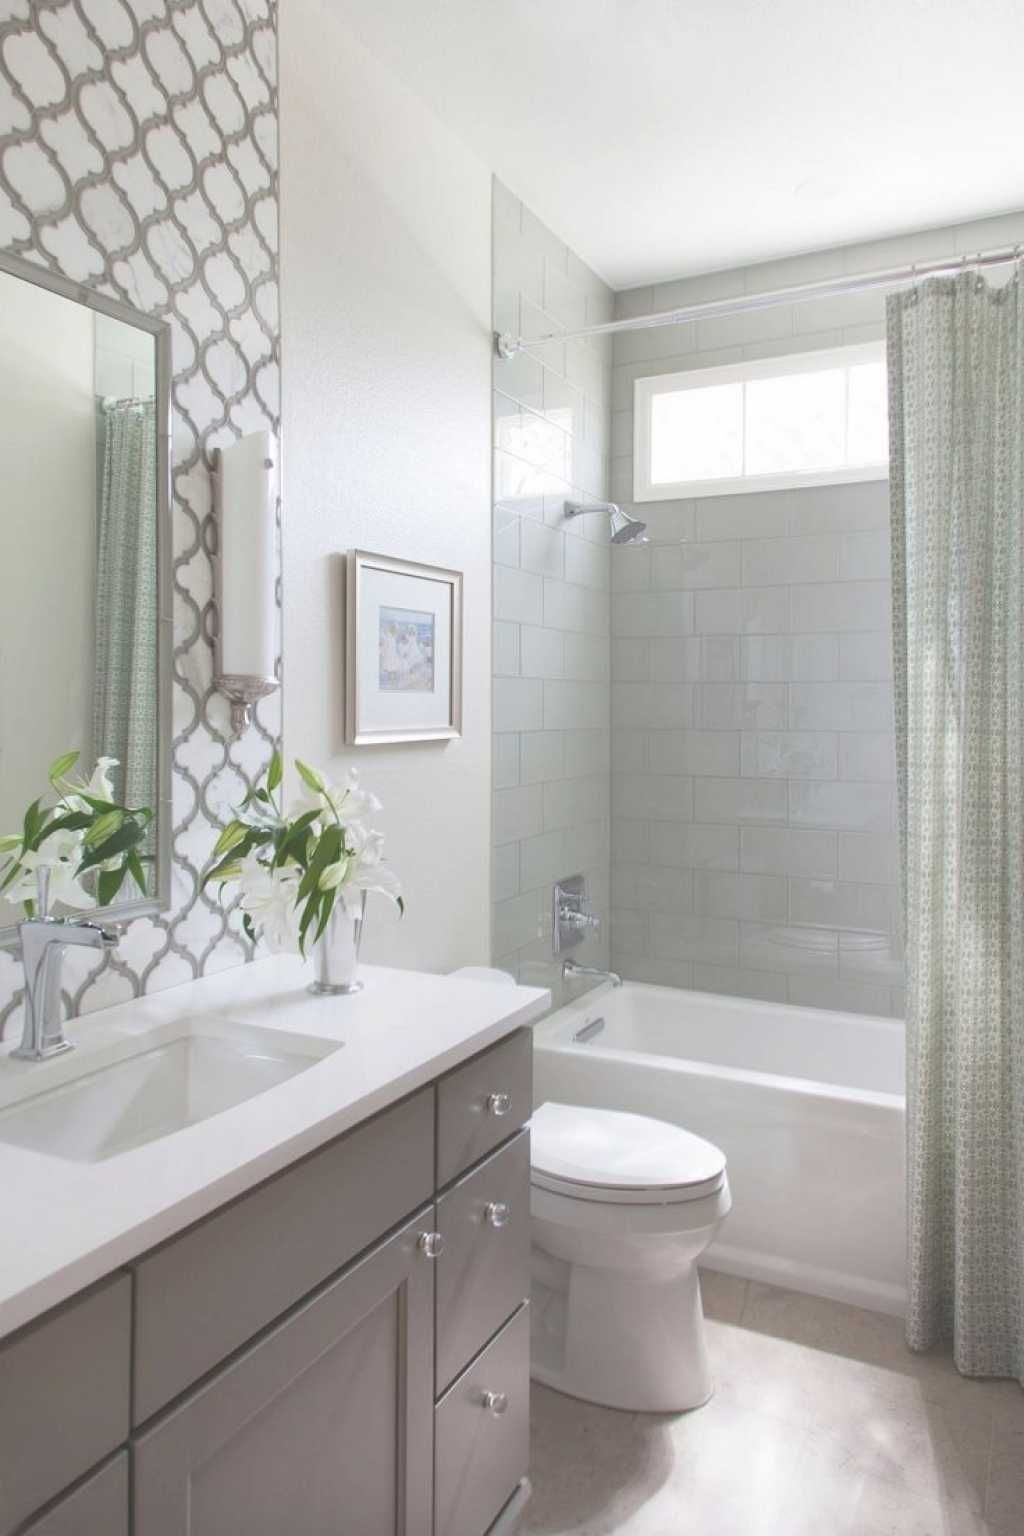 Remodel Your Small Bathroom Fast and Inexpensively My